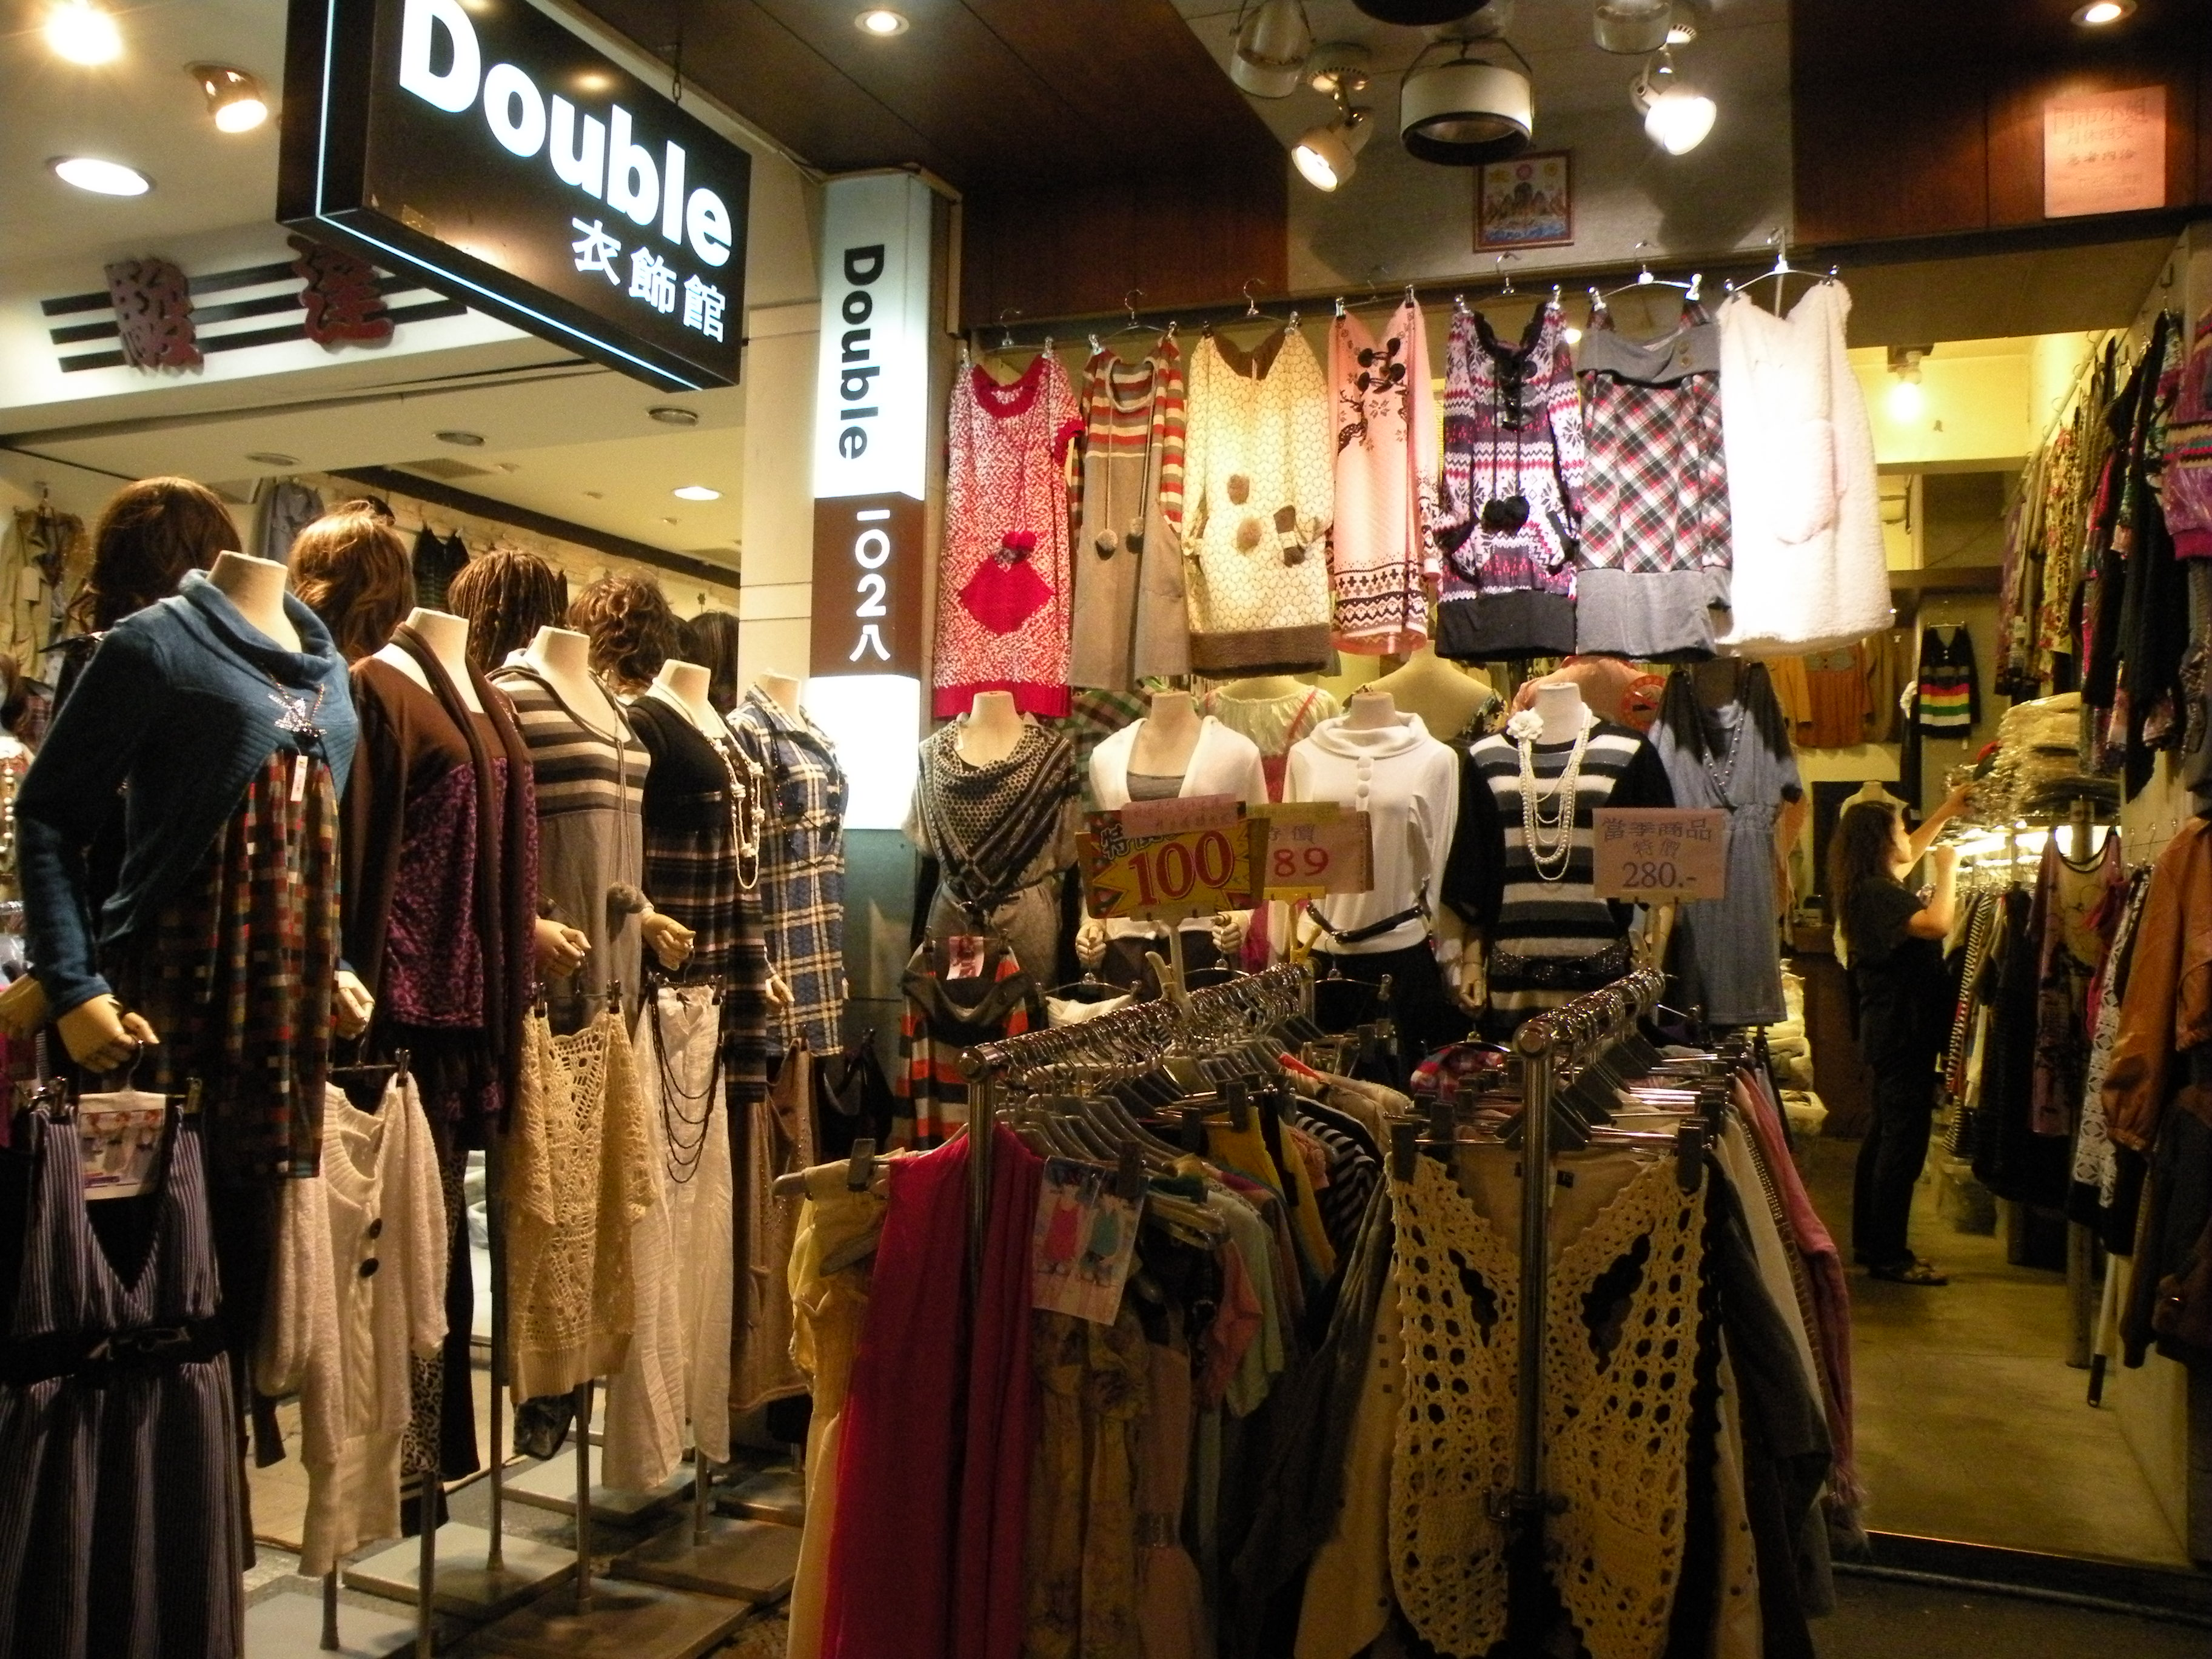 Taiwan clothing stores